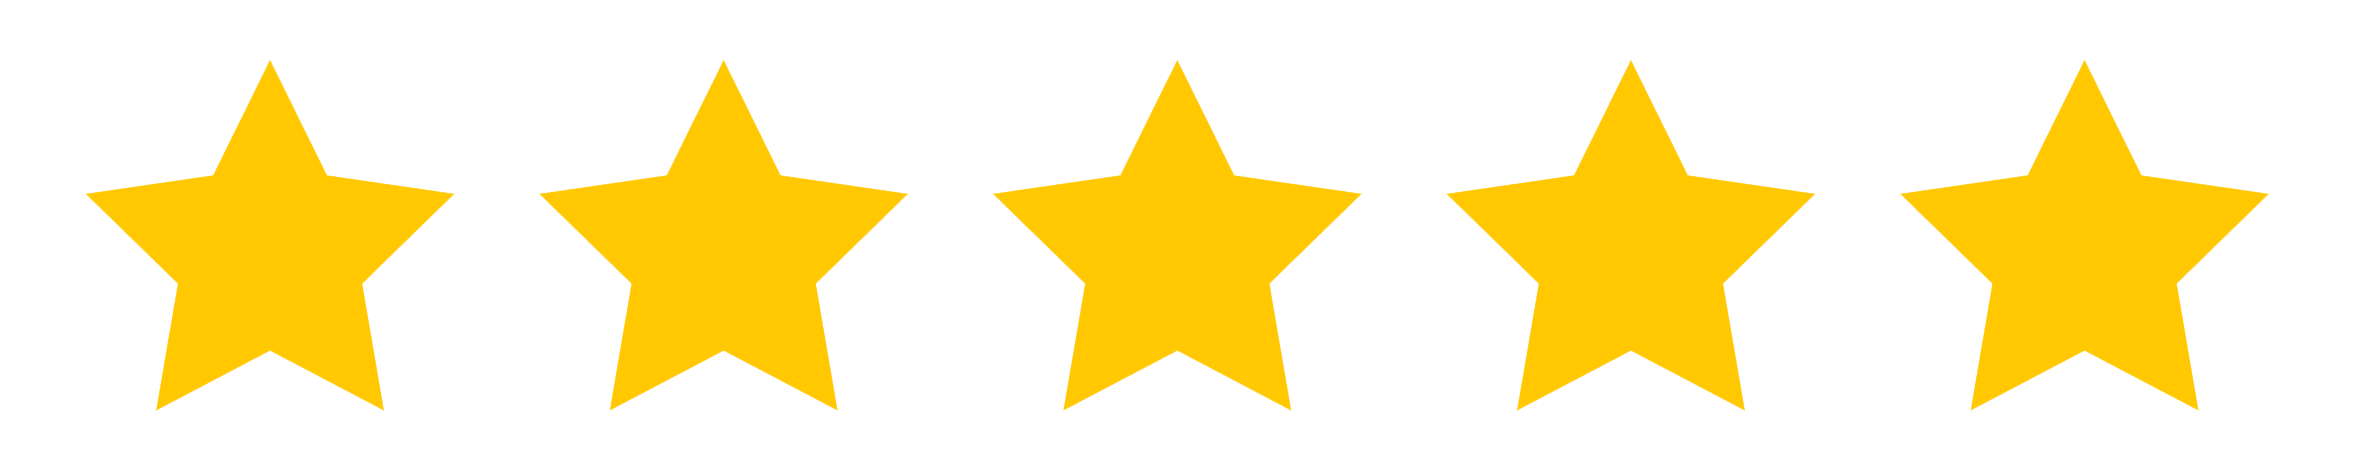 Reviews star rating from Diane C. for A-1 Self Storage in Anaheim, California